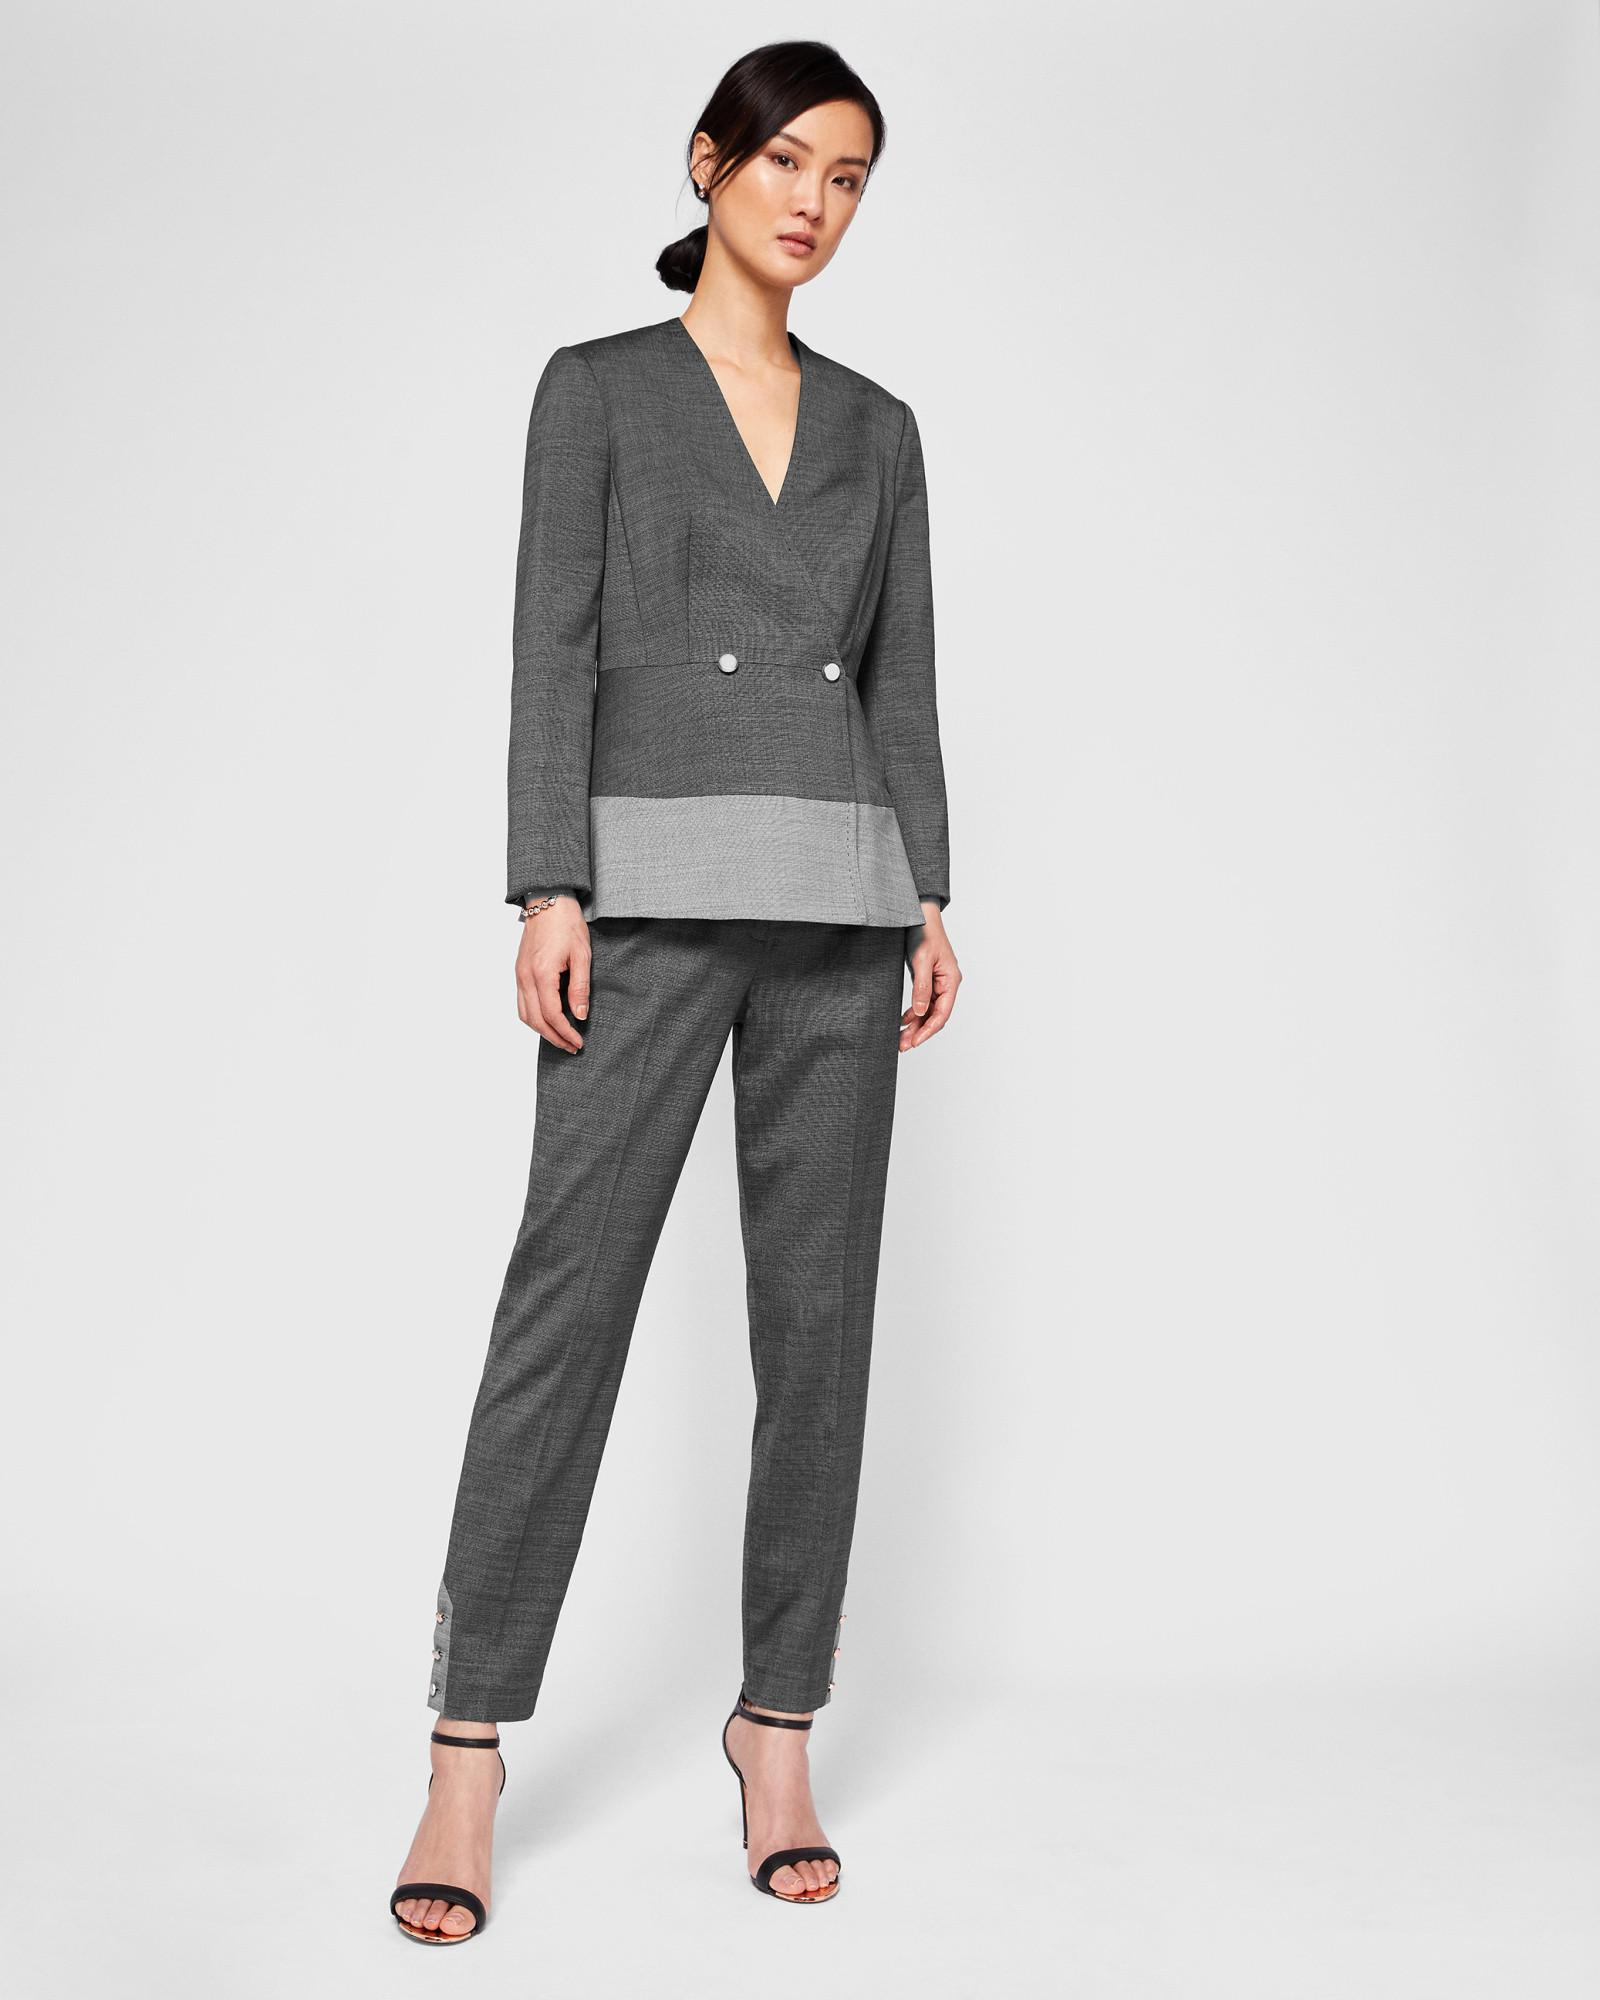 bad0948f9 Ted Baker Contrast Peplum Jacket in Gray - Lyst